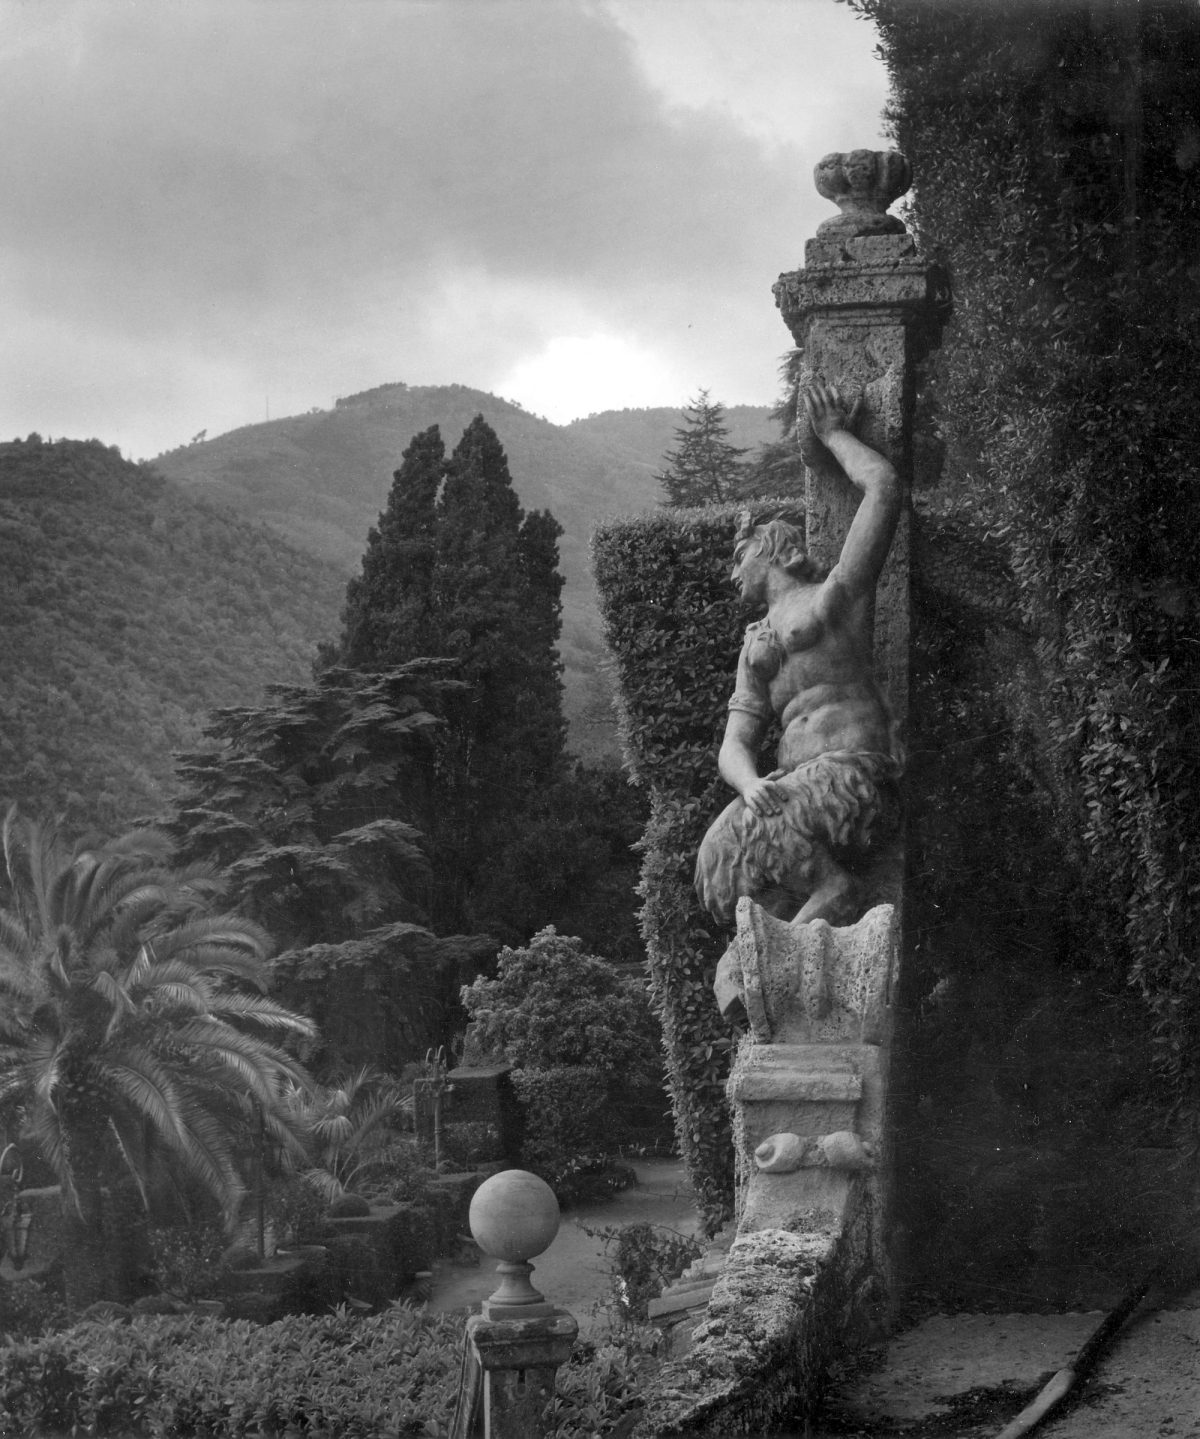 Villa_Garzoni__Collodi__Tuscany_1961_(c)_Edwin_Smith__RIBA_Library_Photographs_Collection